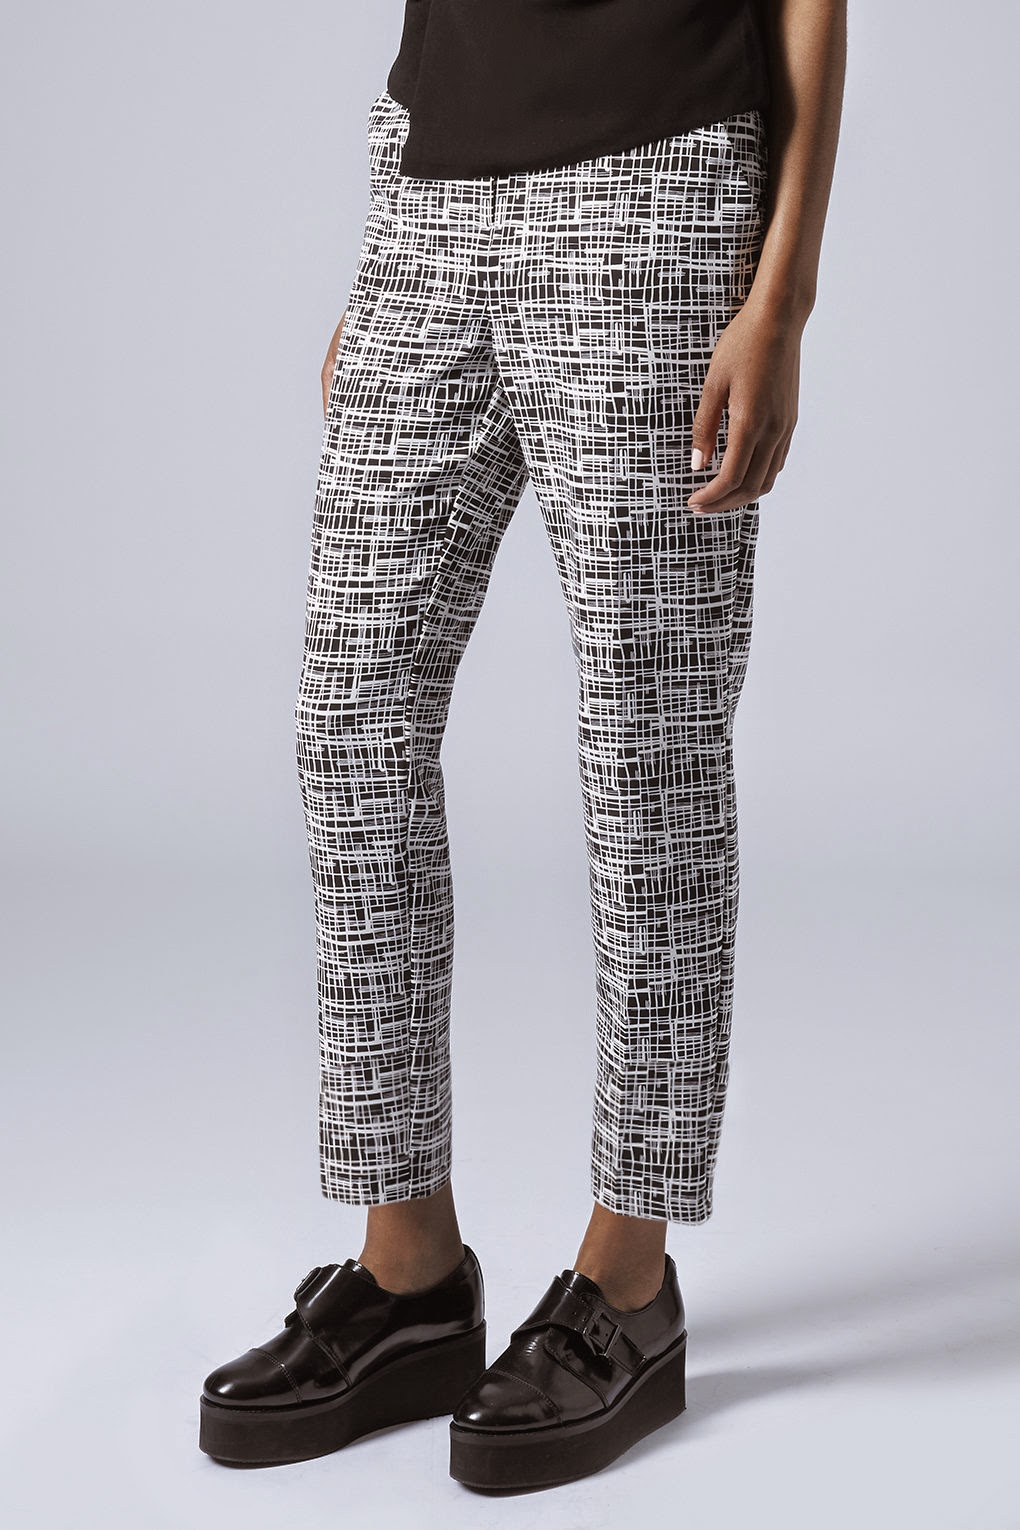 criss cross trousers